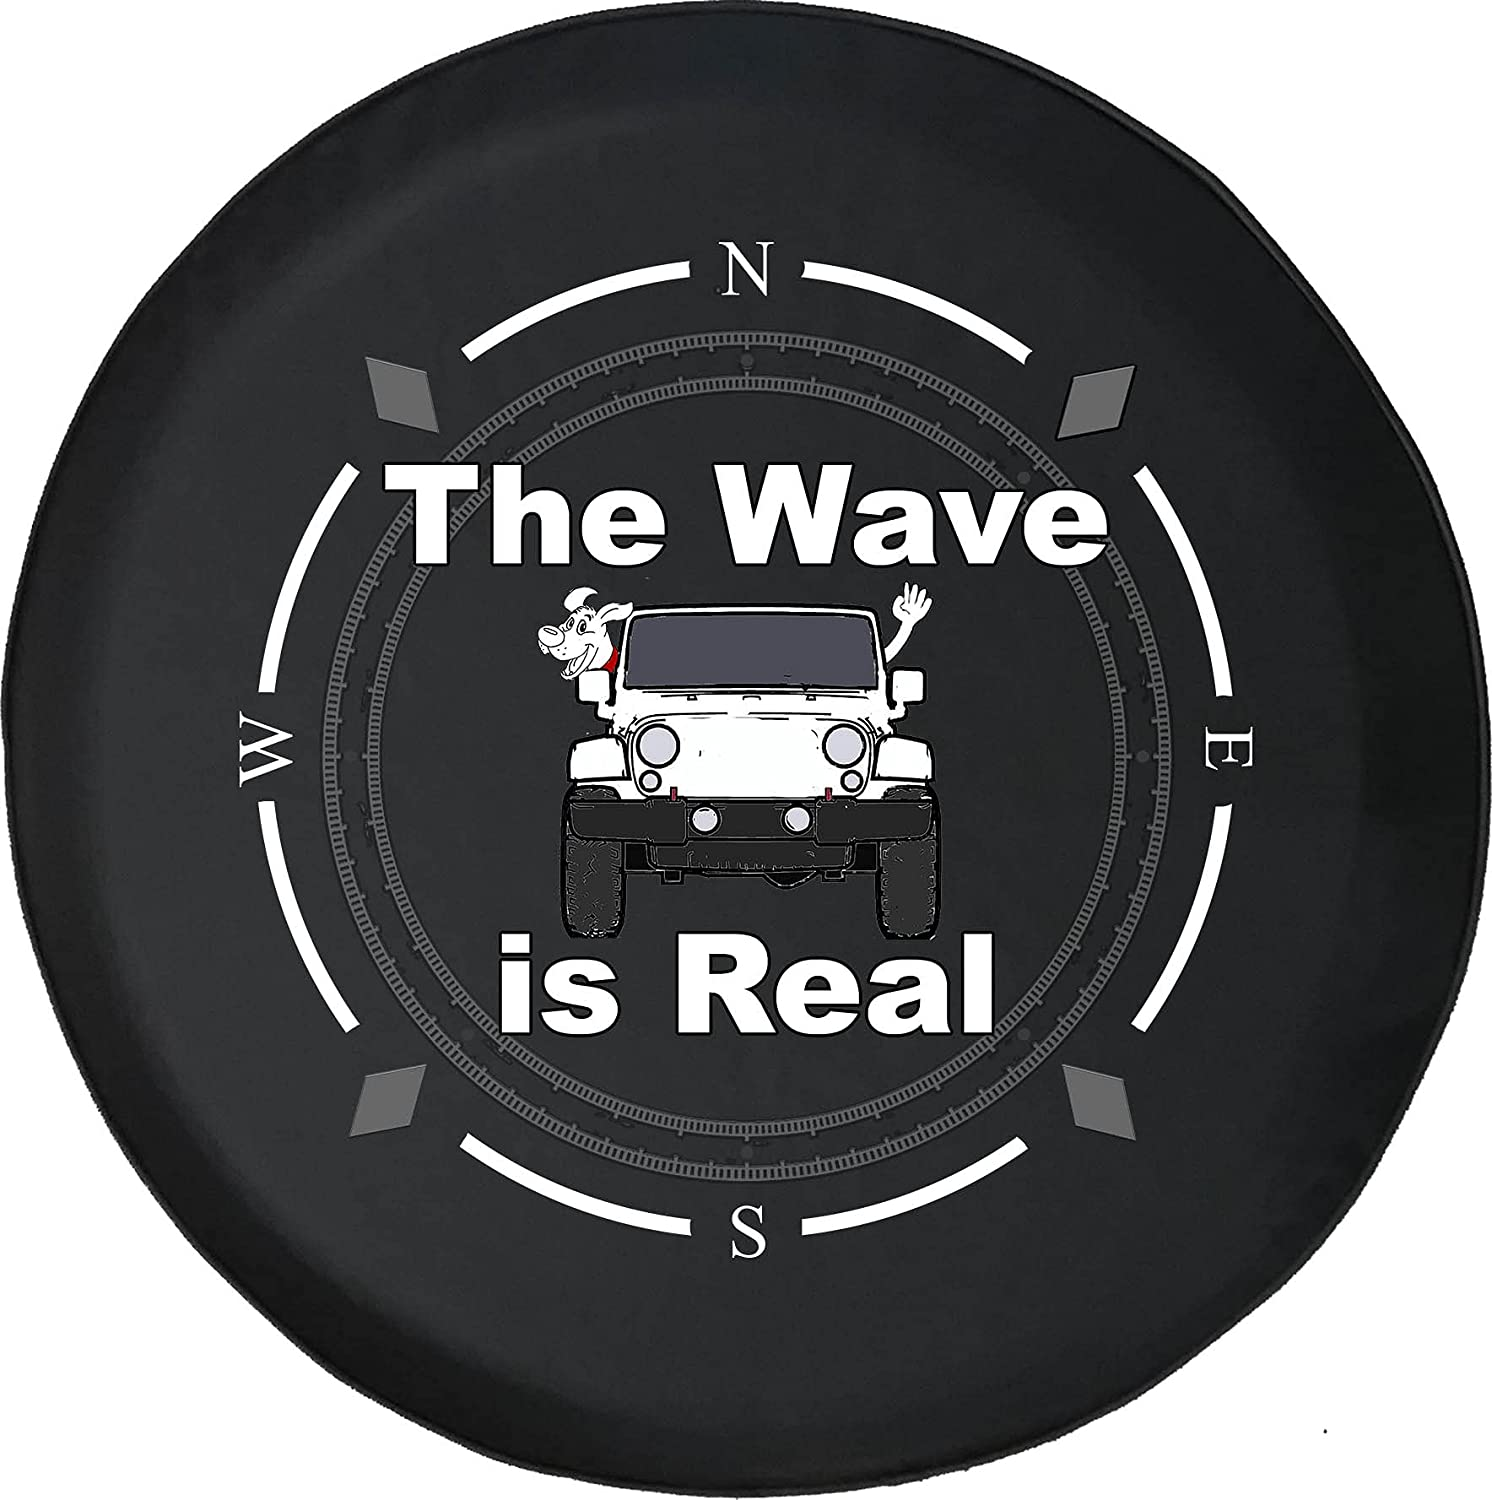 Spare Tire Courier shipping free shipping Cover Compass Dog Paw At the price Real SUV or Fits Wave RV Camper